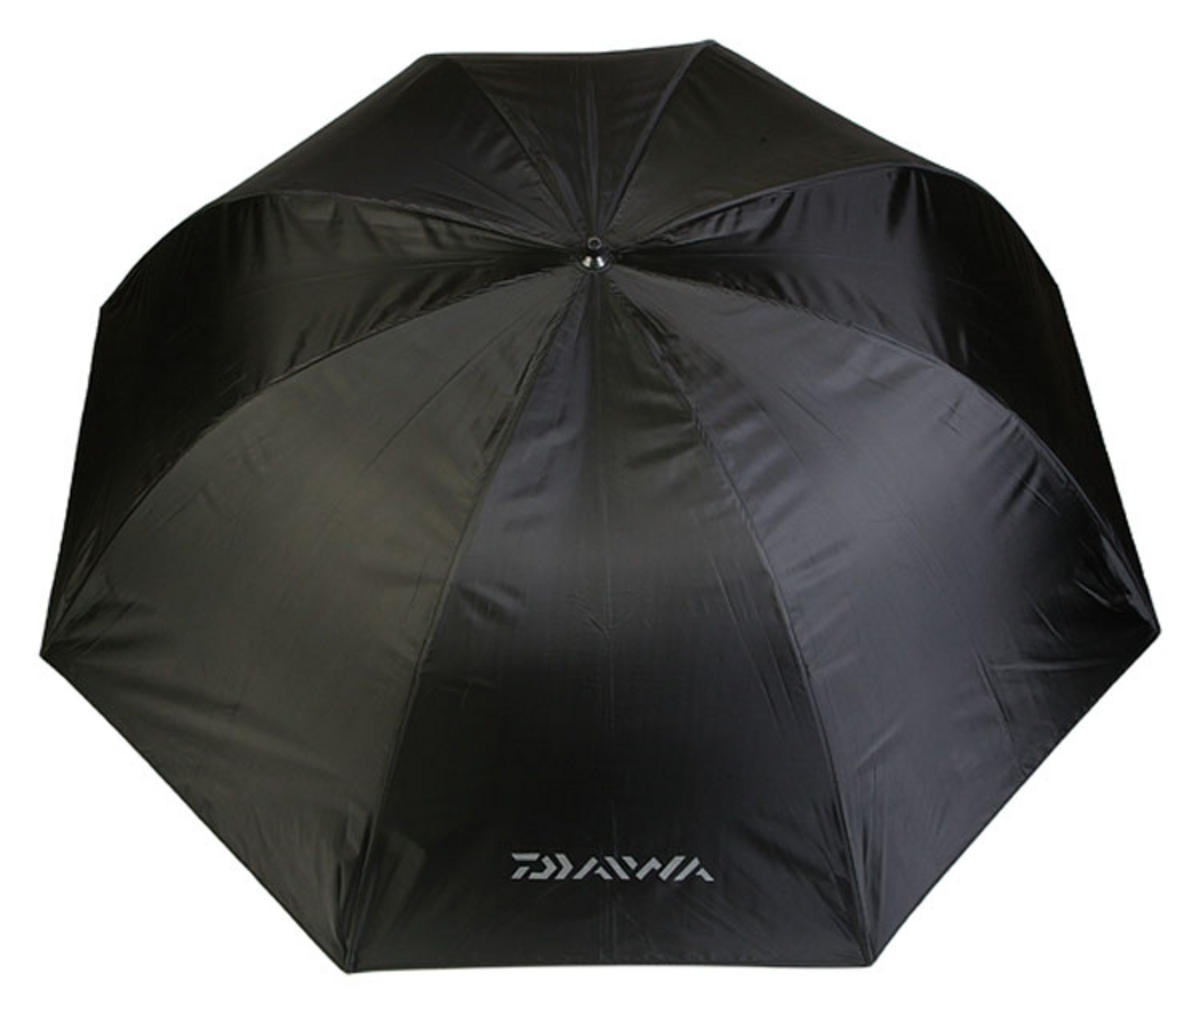 NEW DAIWA VECTOR 110CM 45' FISHING BROLLY / UMBRELLA BLACK DVB110-B